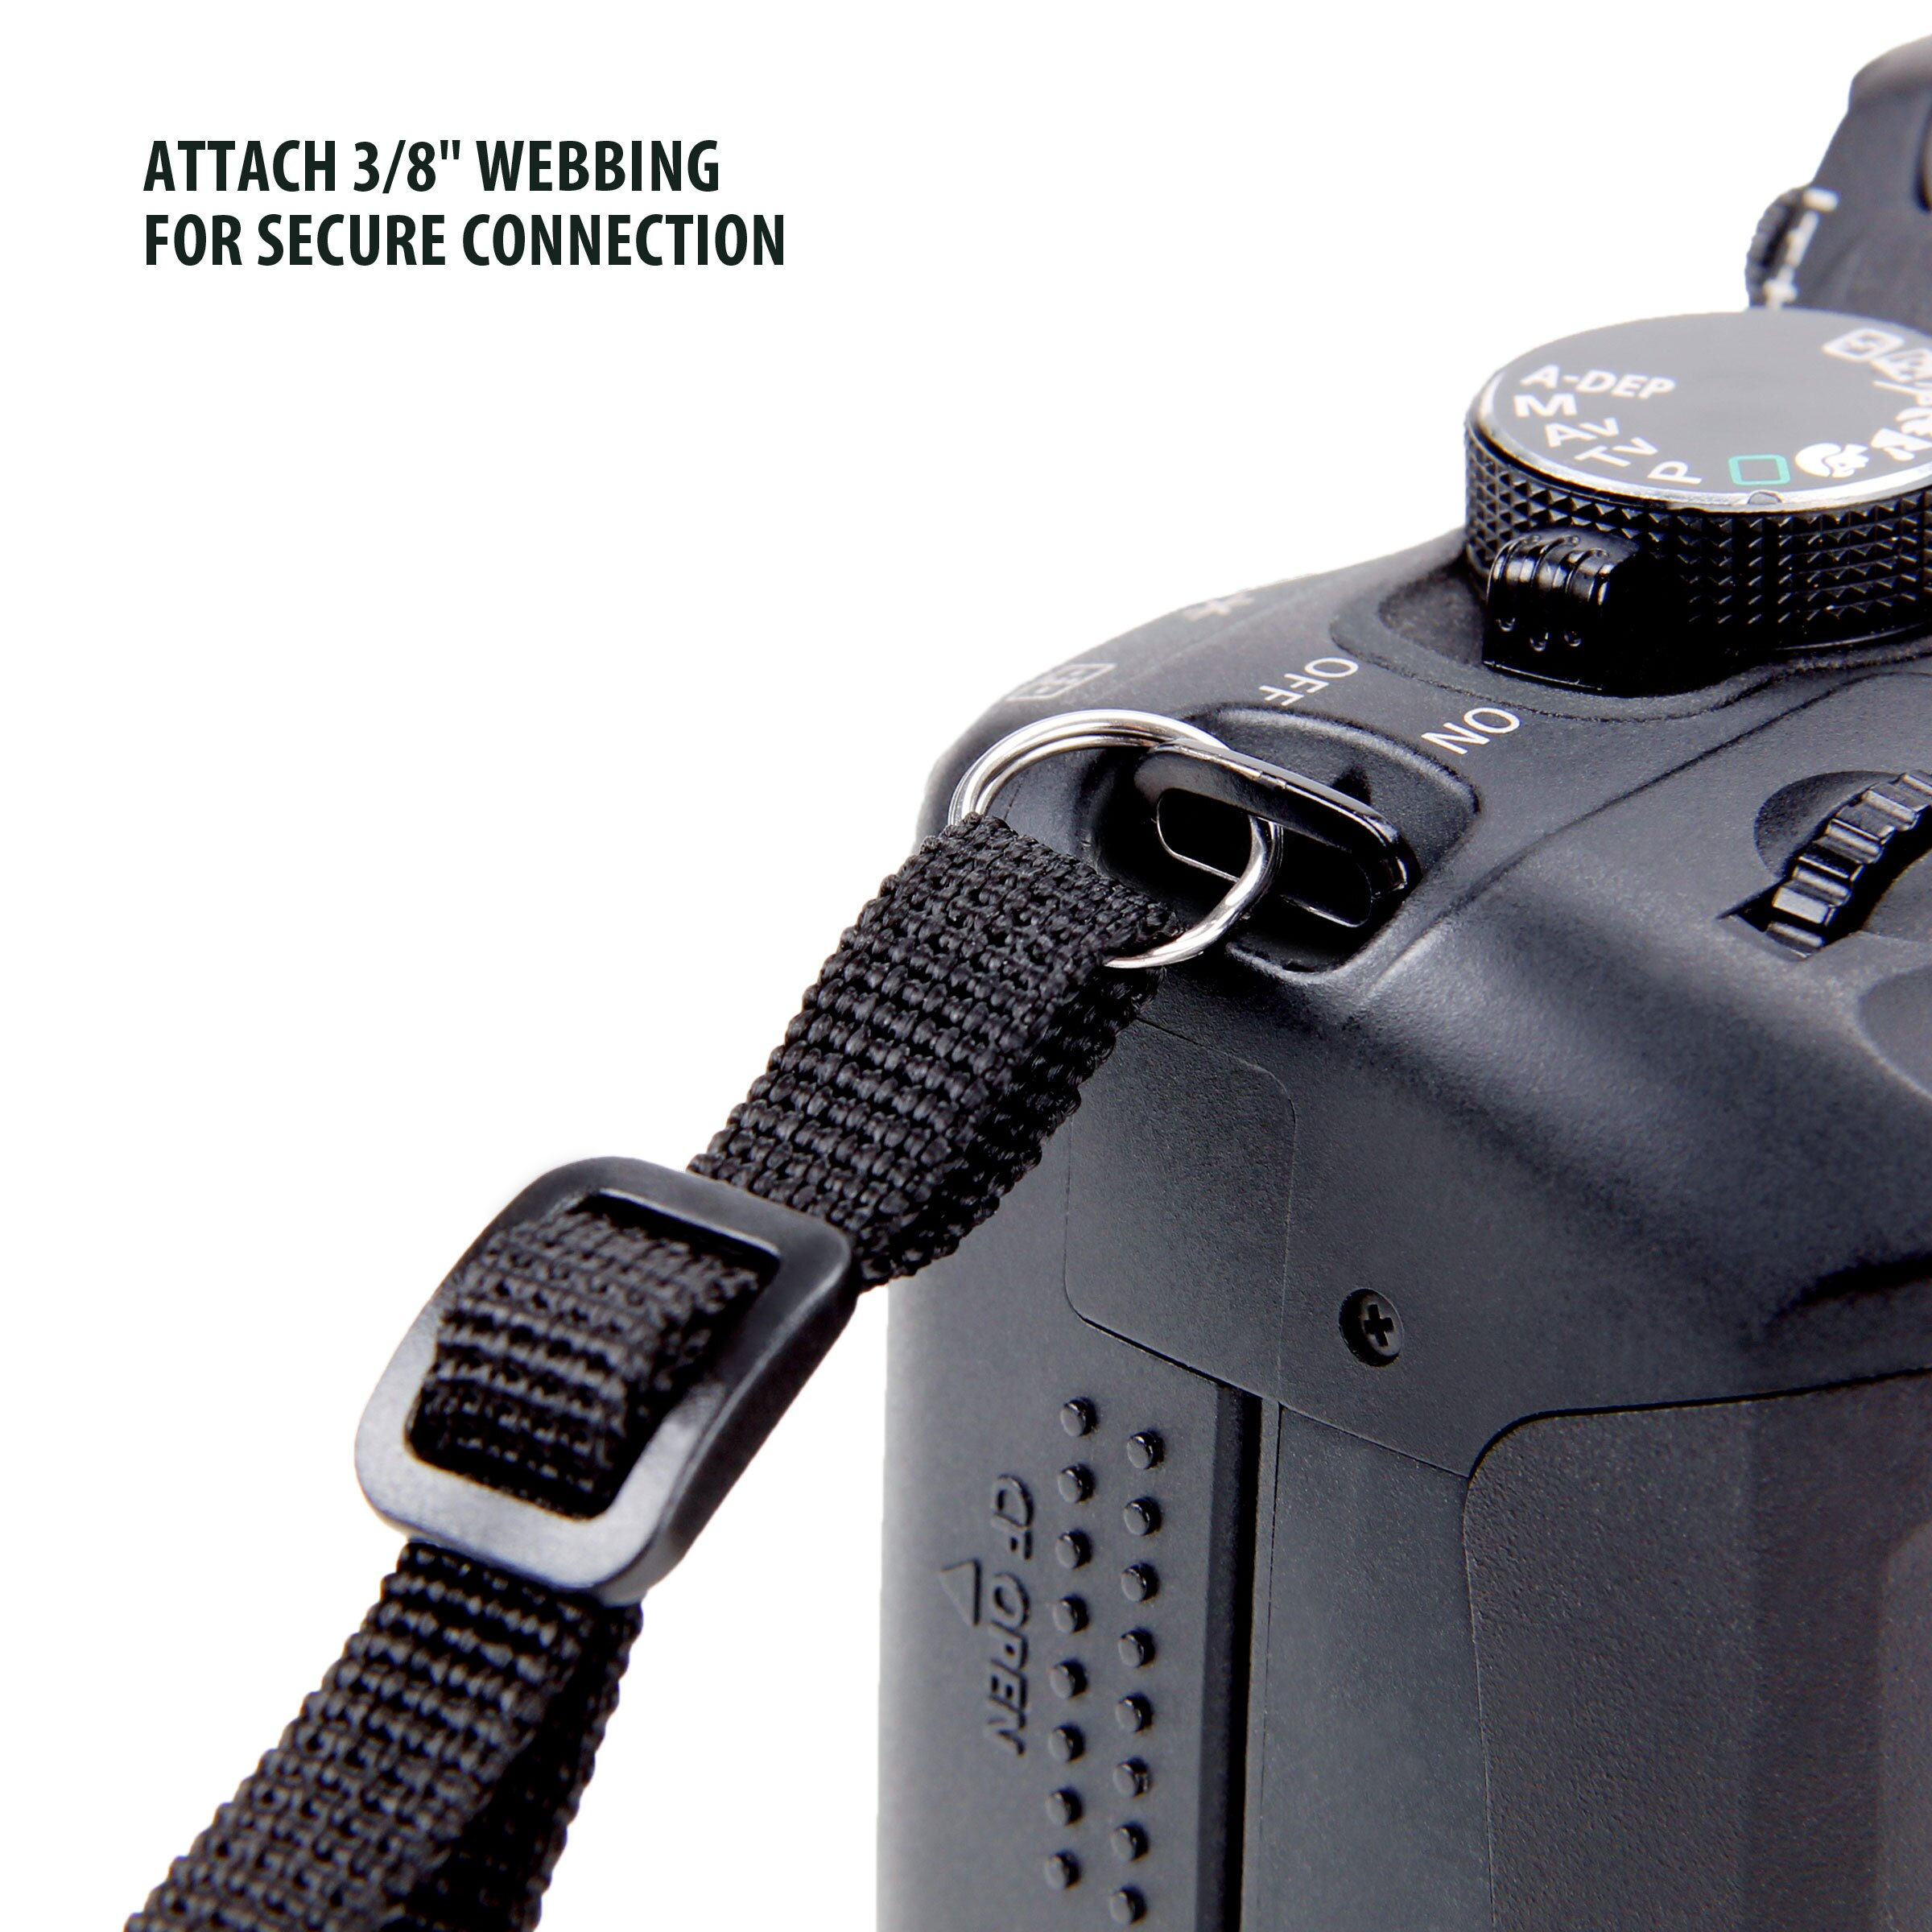 Camera Neck Strap Shoulder Sling with Accessory Storage Pockets by USA Gear for Sony Cameras 6